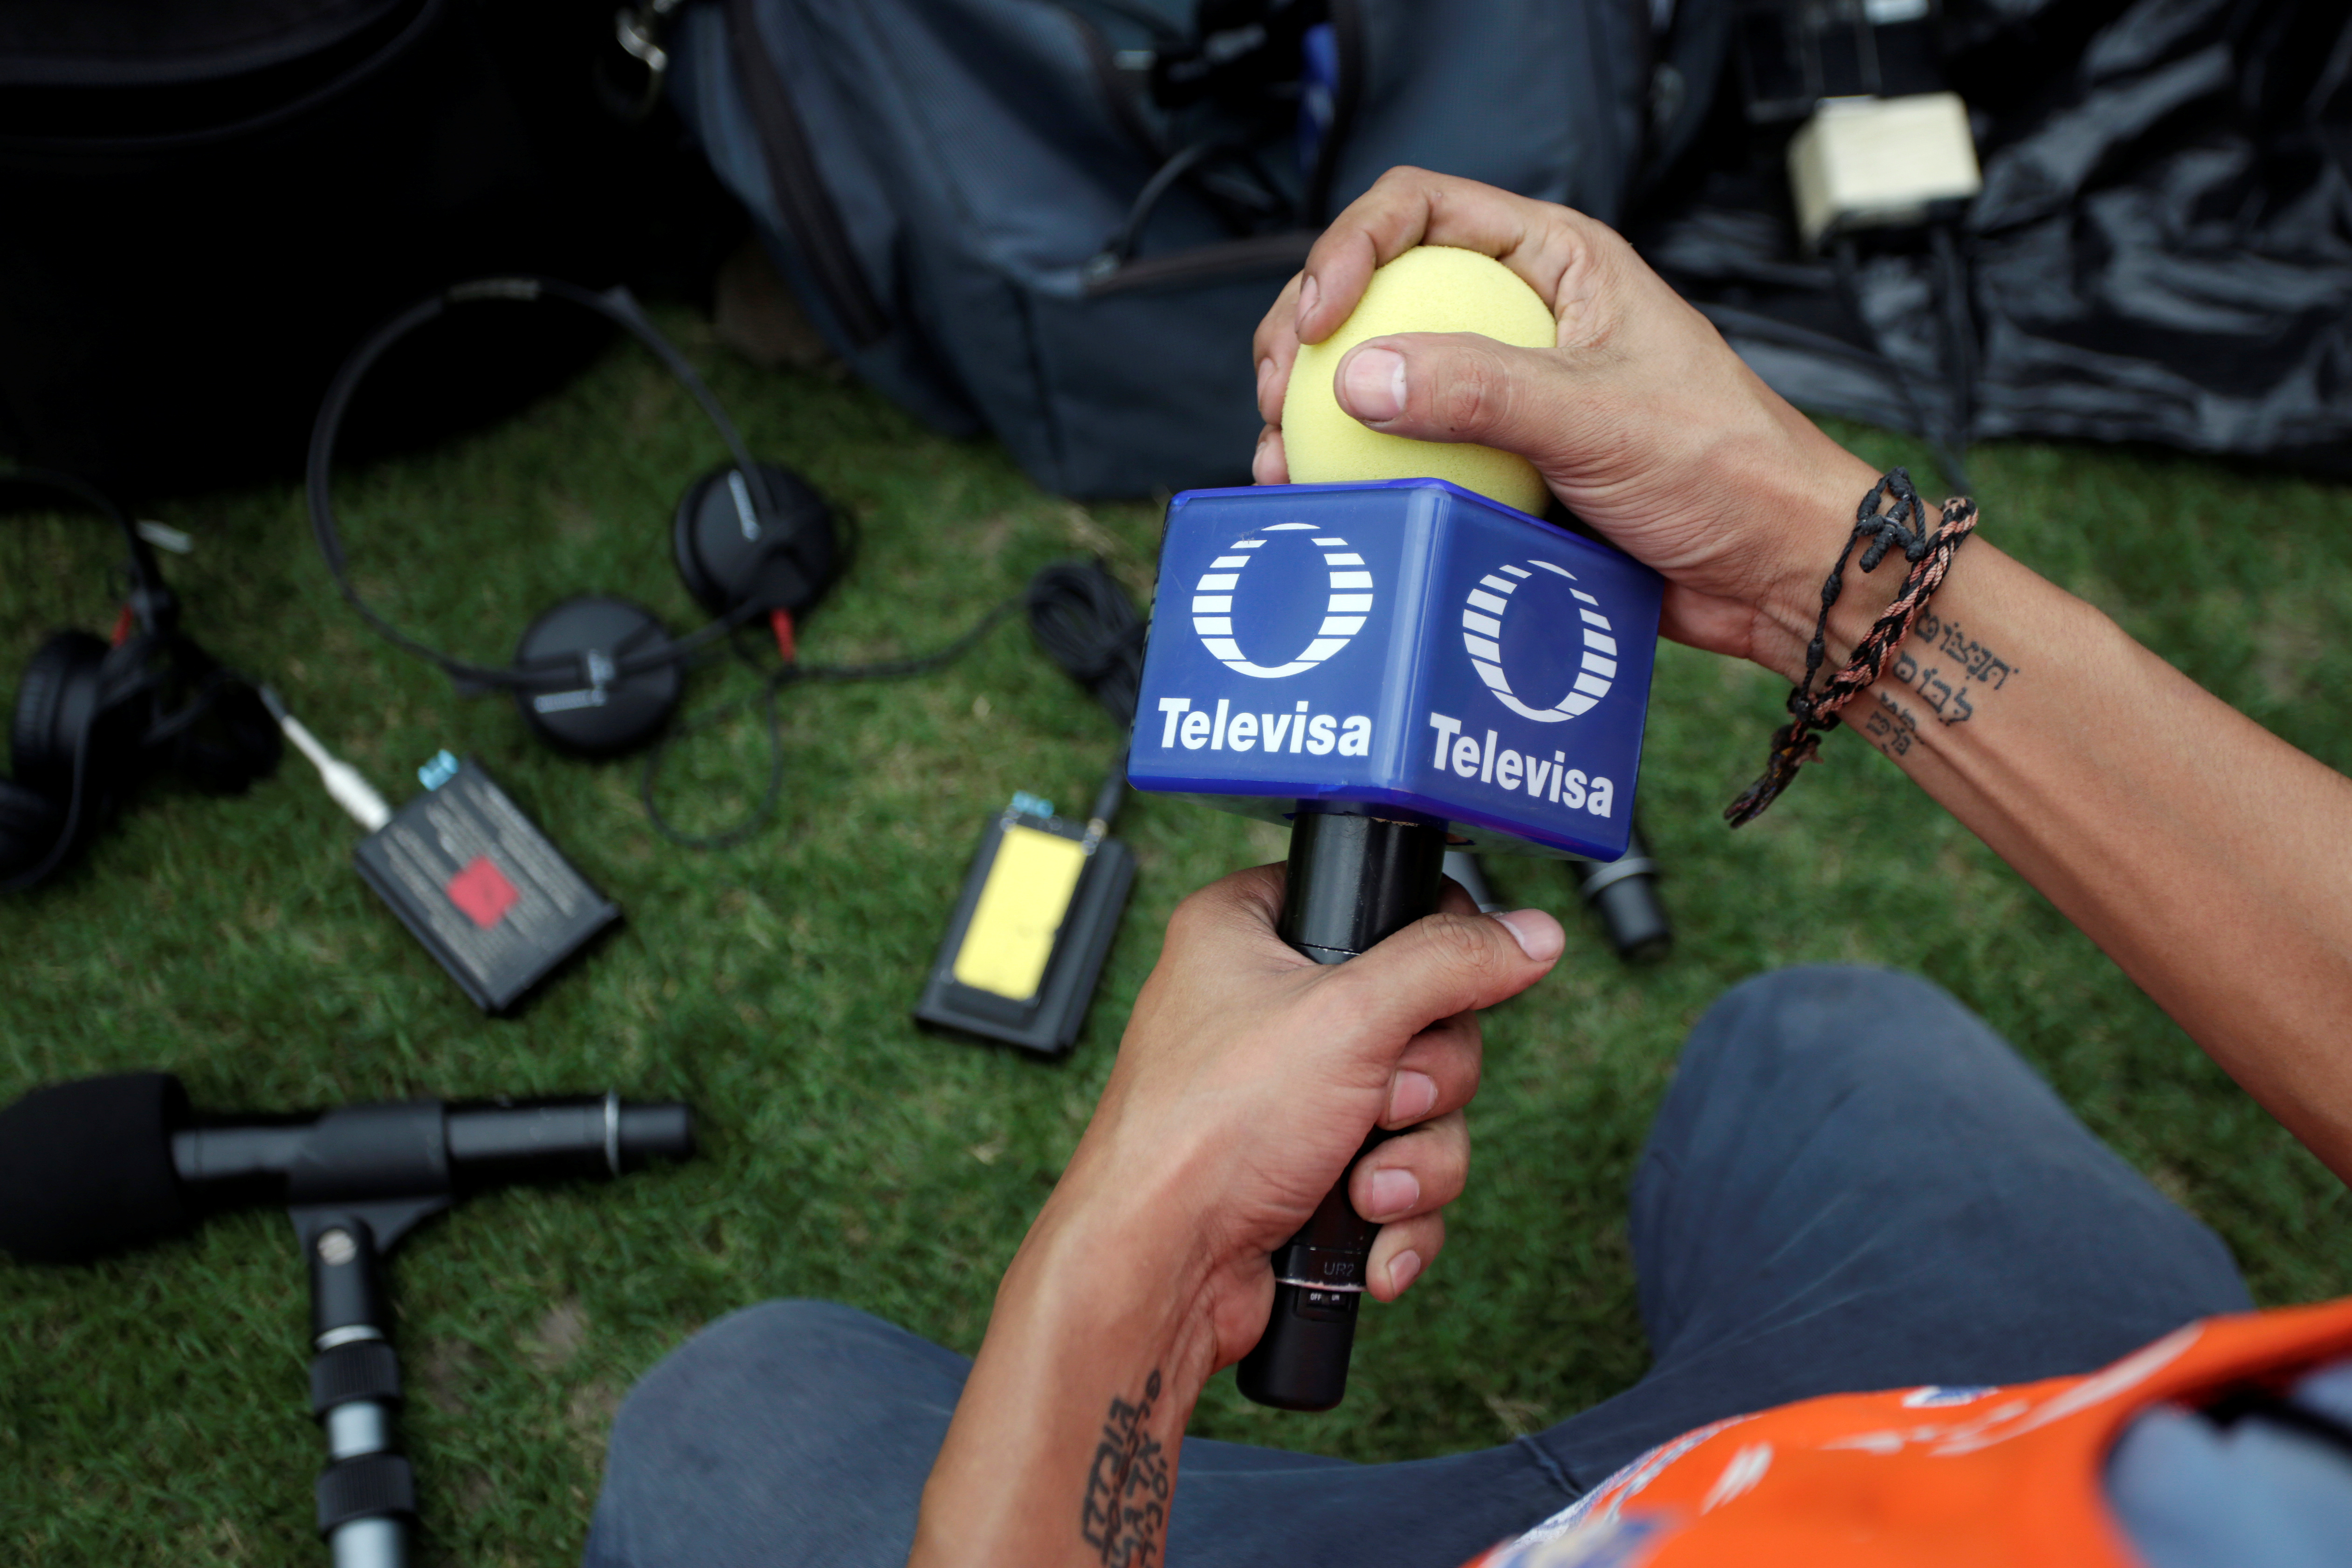 A technician holds a microphone of Mexican broadcaster Televisa before a soccer match at Universitario stadium in San Nicolas de los Garza, on the outskirts of Monterrey, Mexico May 3, 2018. Picture taken May 3, 2018. REUTERS/Daniel Becerril